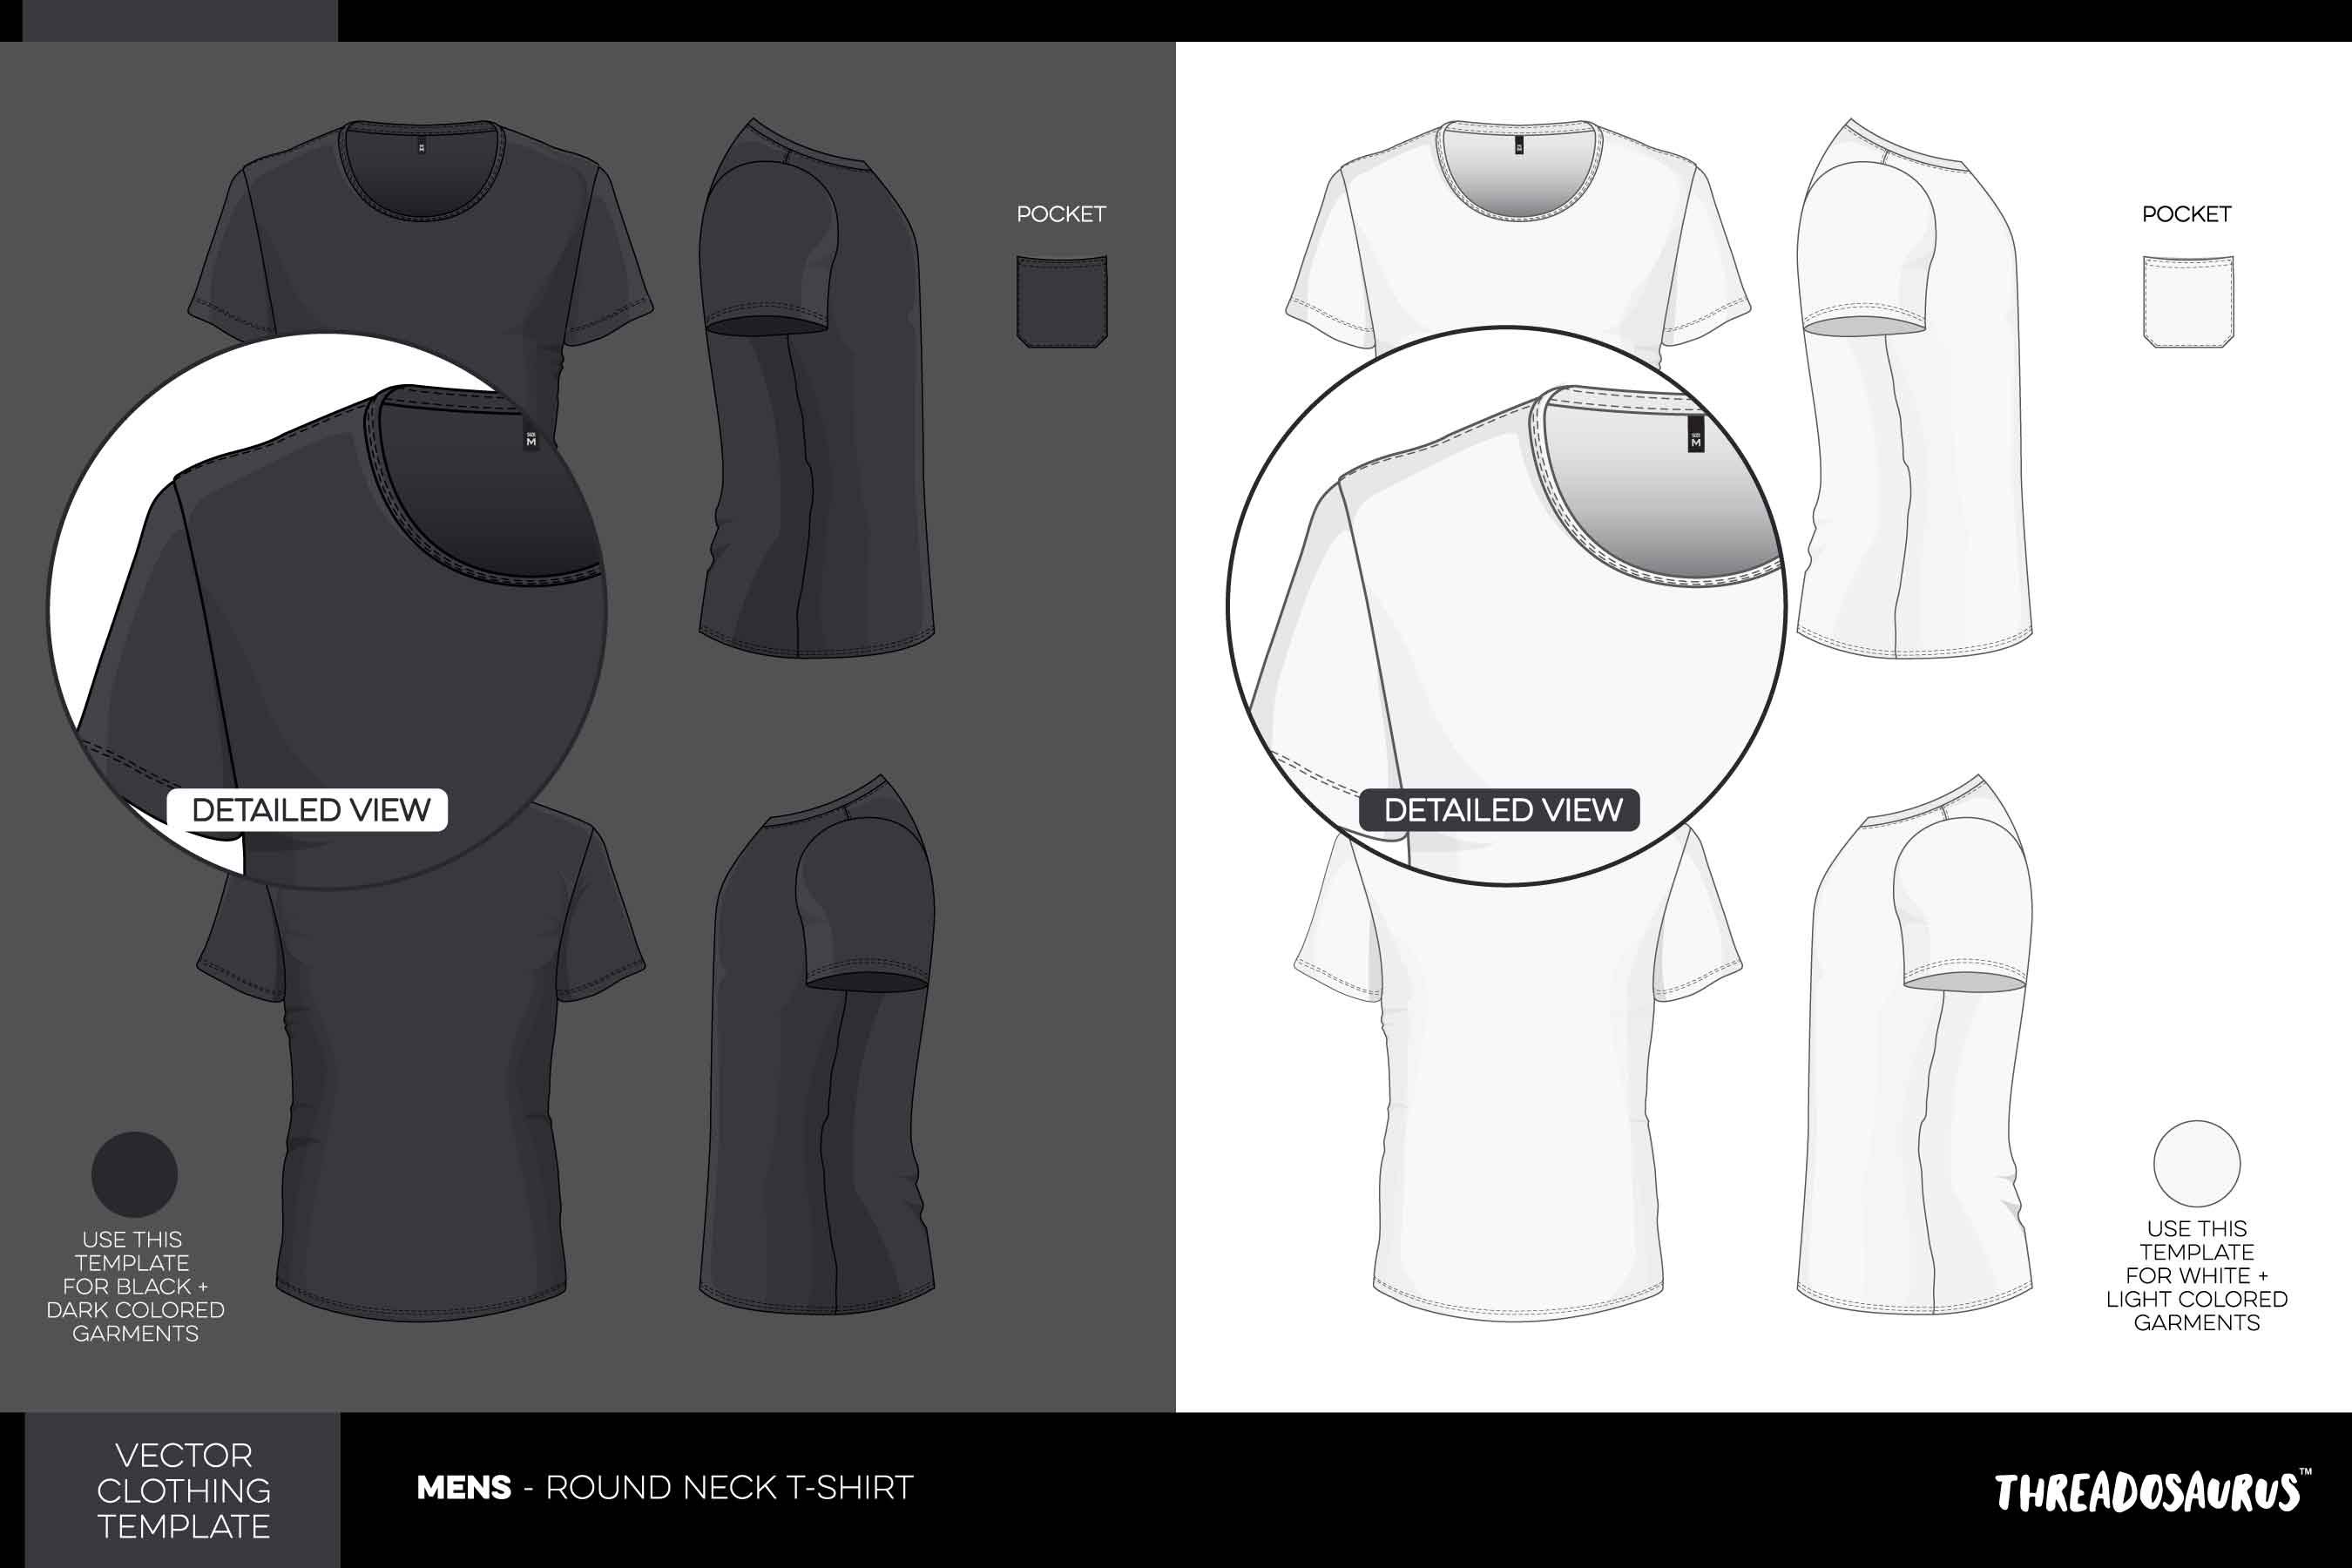 Mens Round Neck T-Shirt Template VECTOR Pack with Pocket Add-on